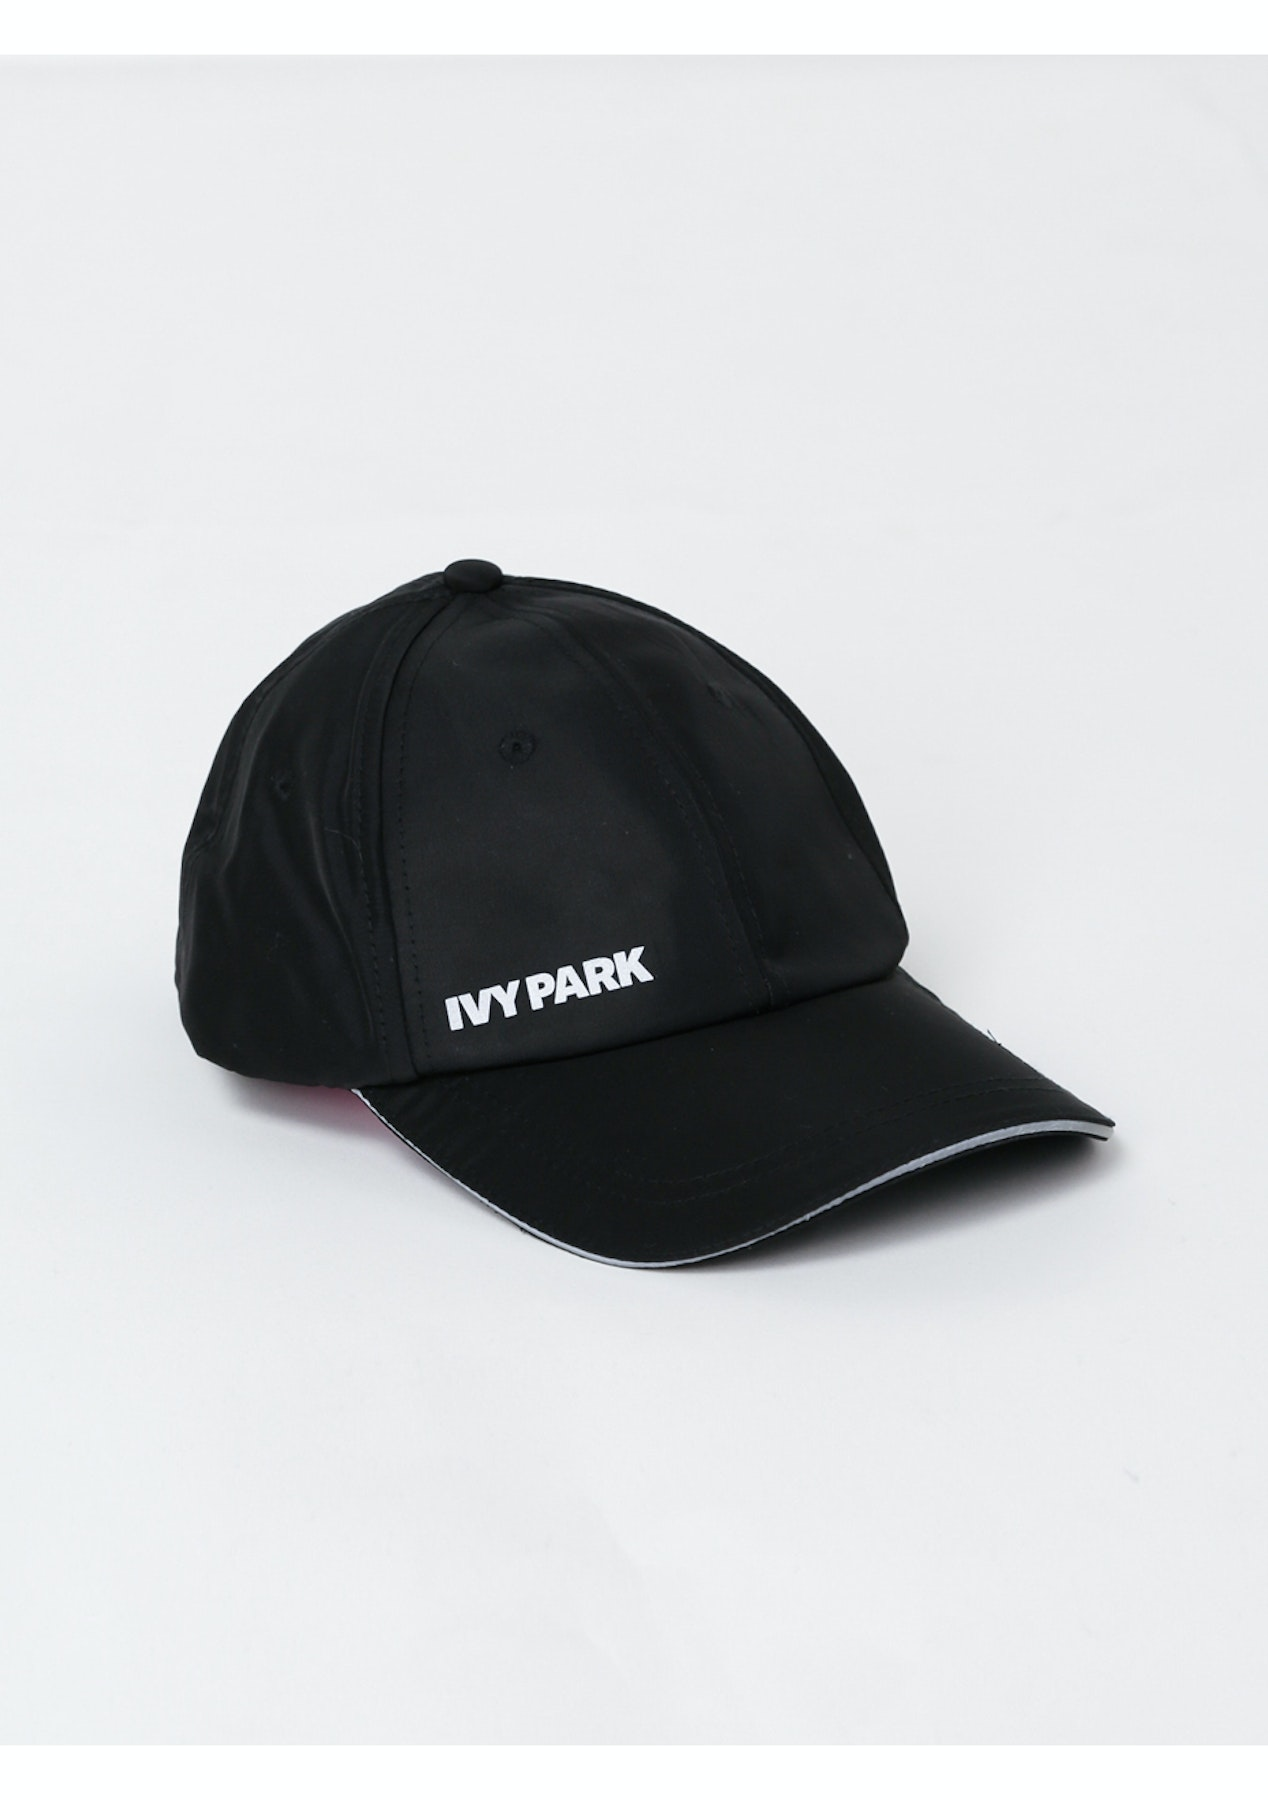 c4072345bd5 Ivy Park - Logo Baseball Cap - Black - Best of the Month - Onceit